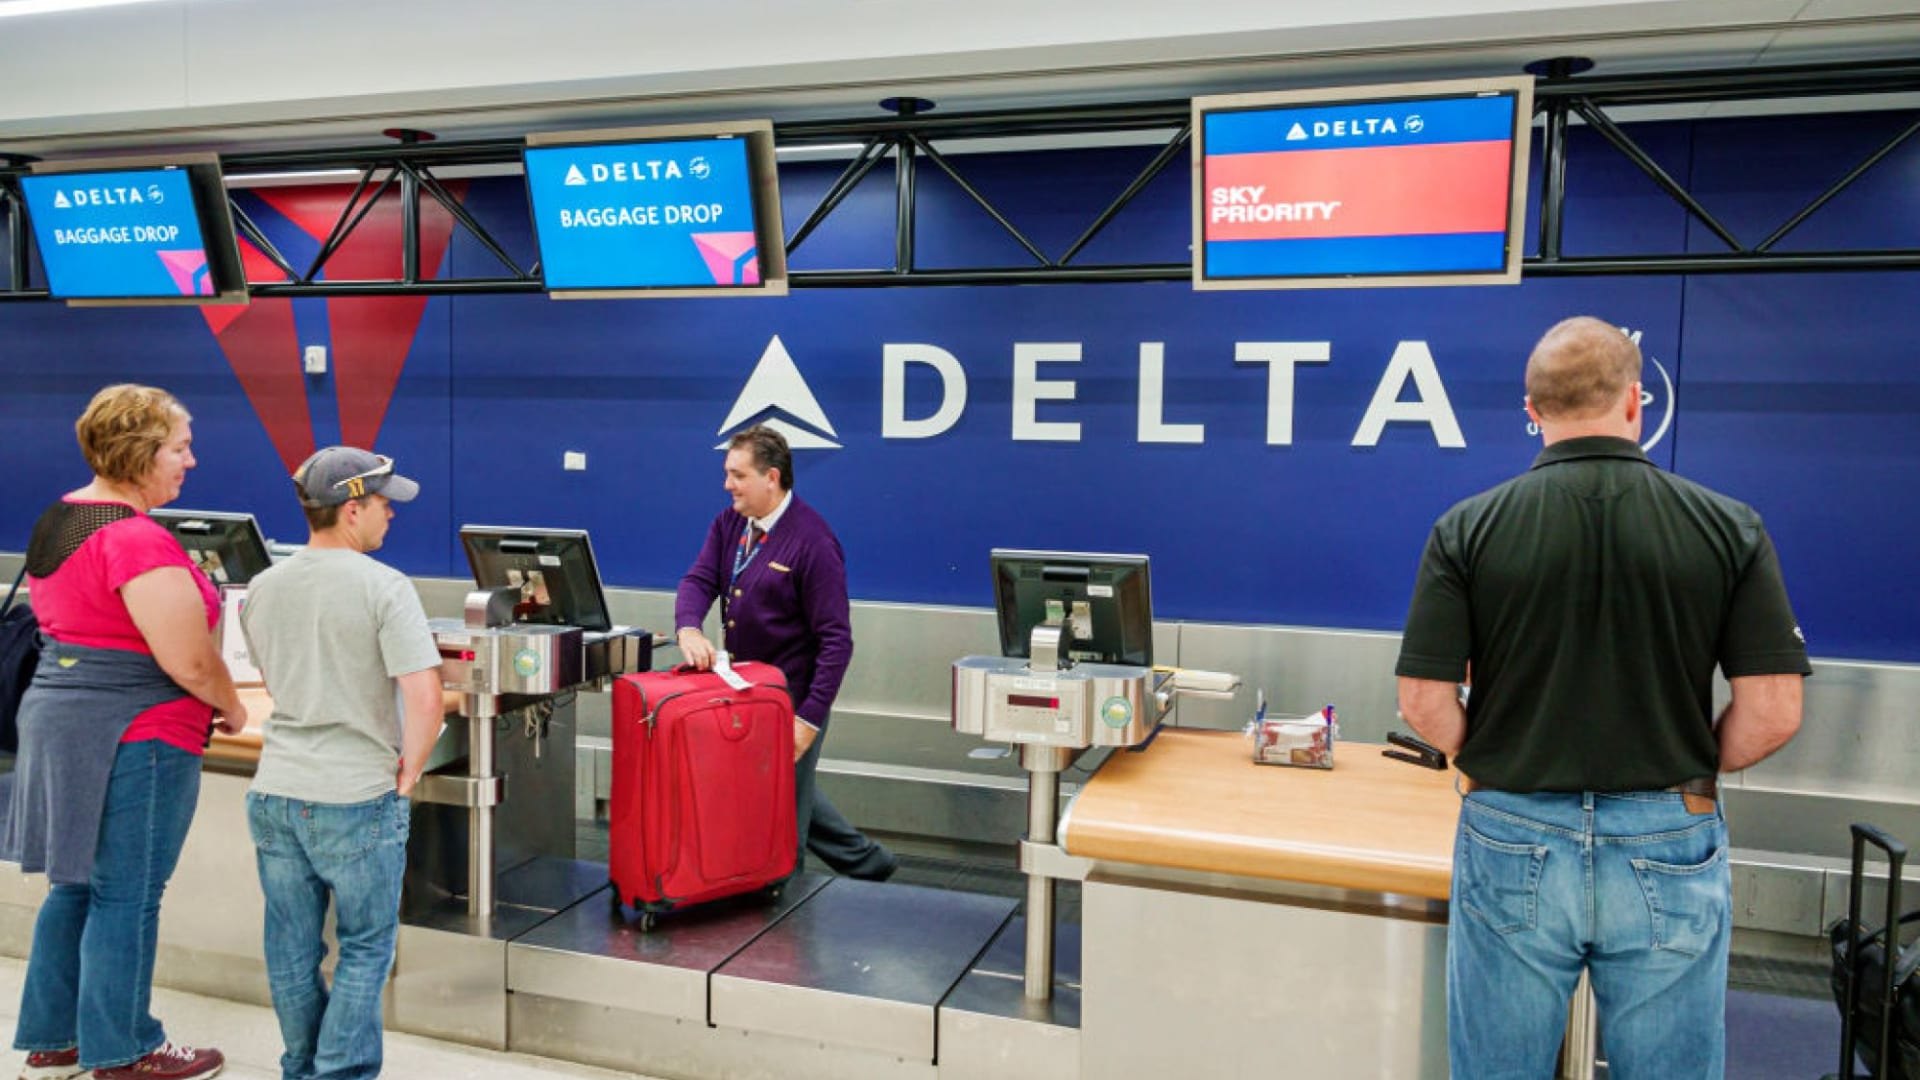 Delta Air Lines Is Introducing a Change That Is Upsetting Its Best Customers. It's the 1 Thing No Company Should Ever Do